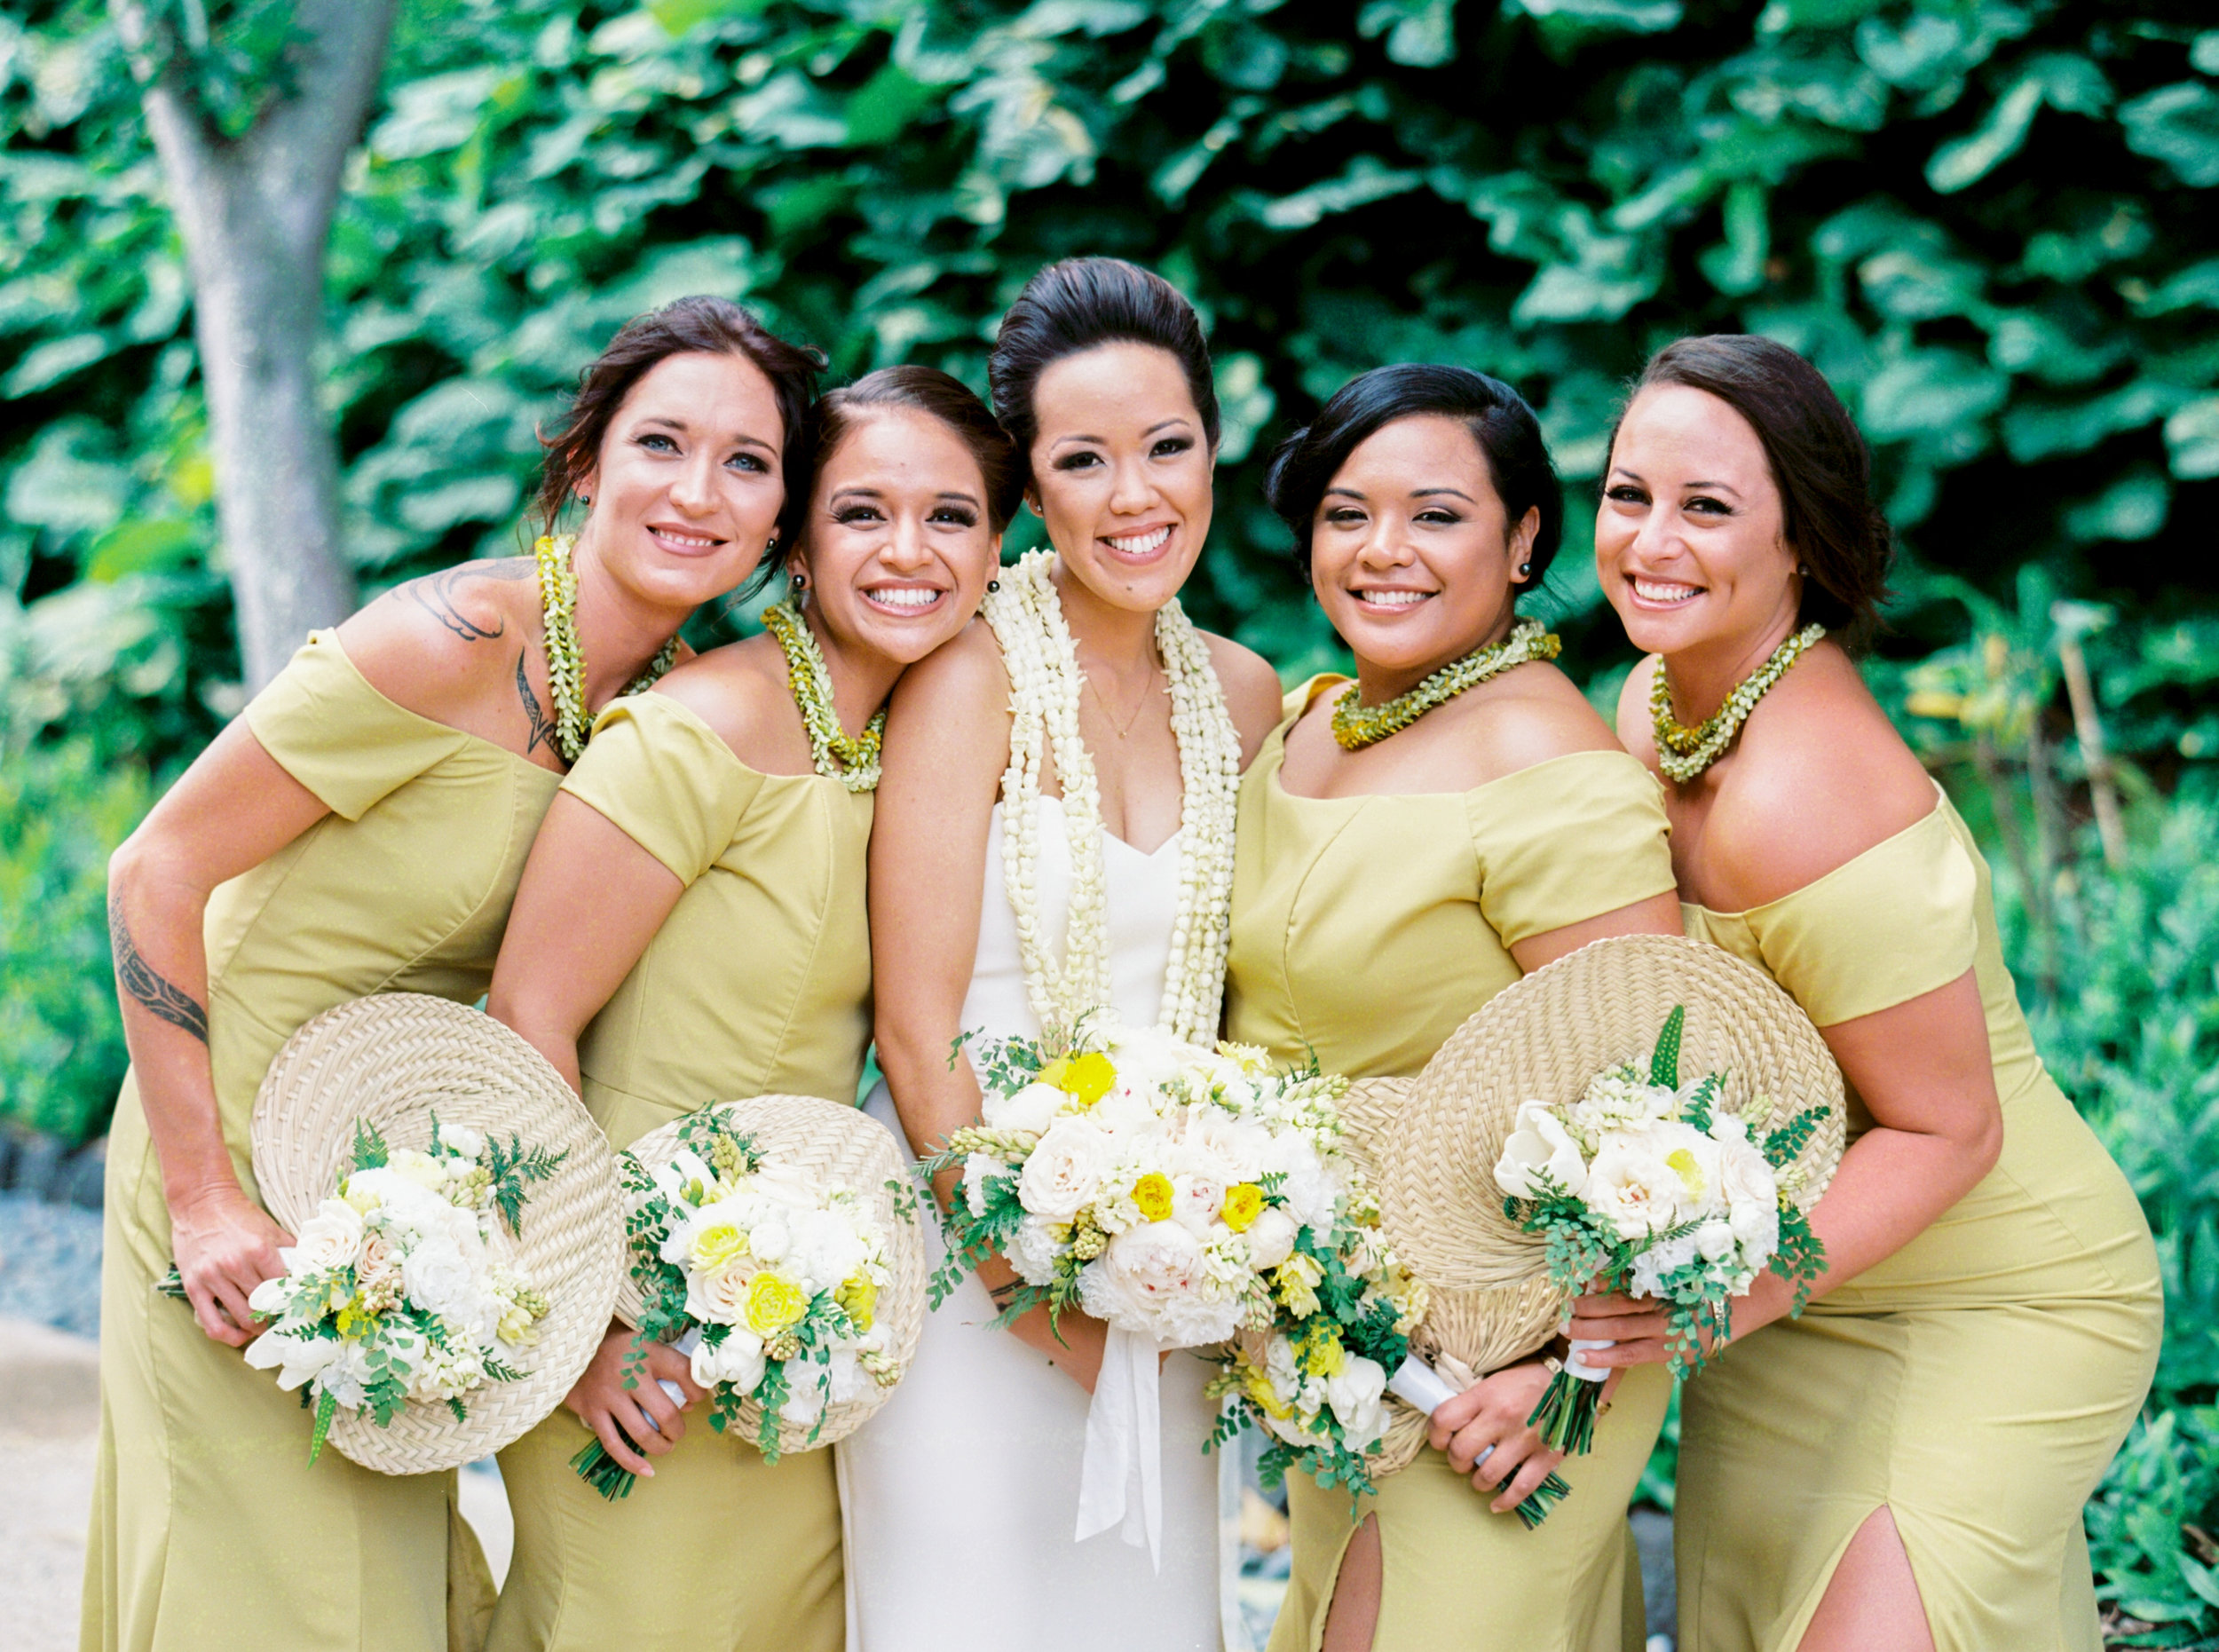 U'i+Zach|bridalparty-12.jpg